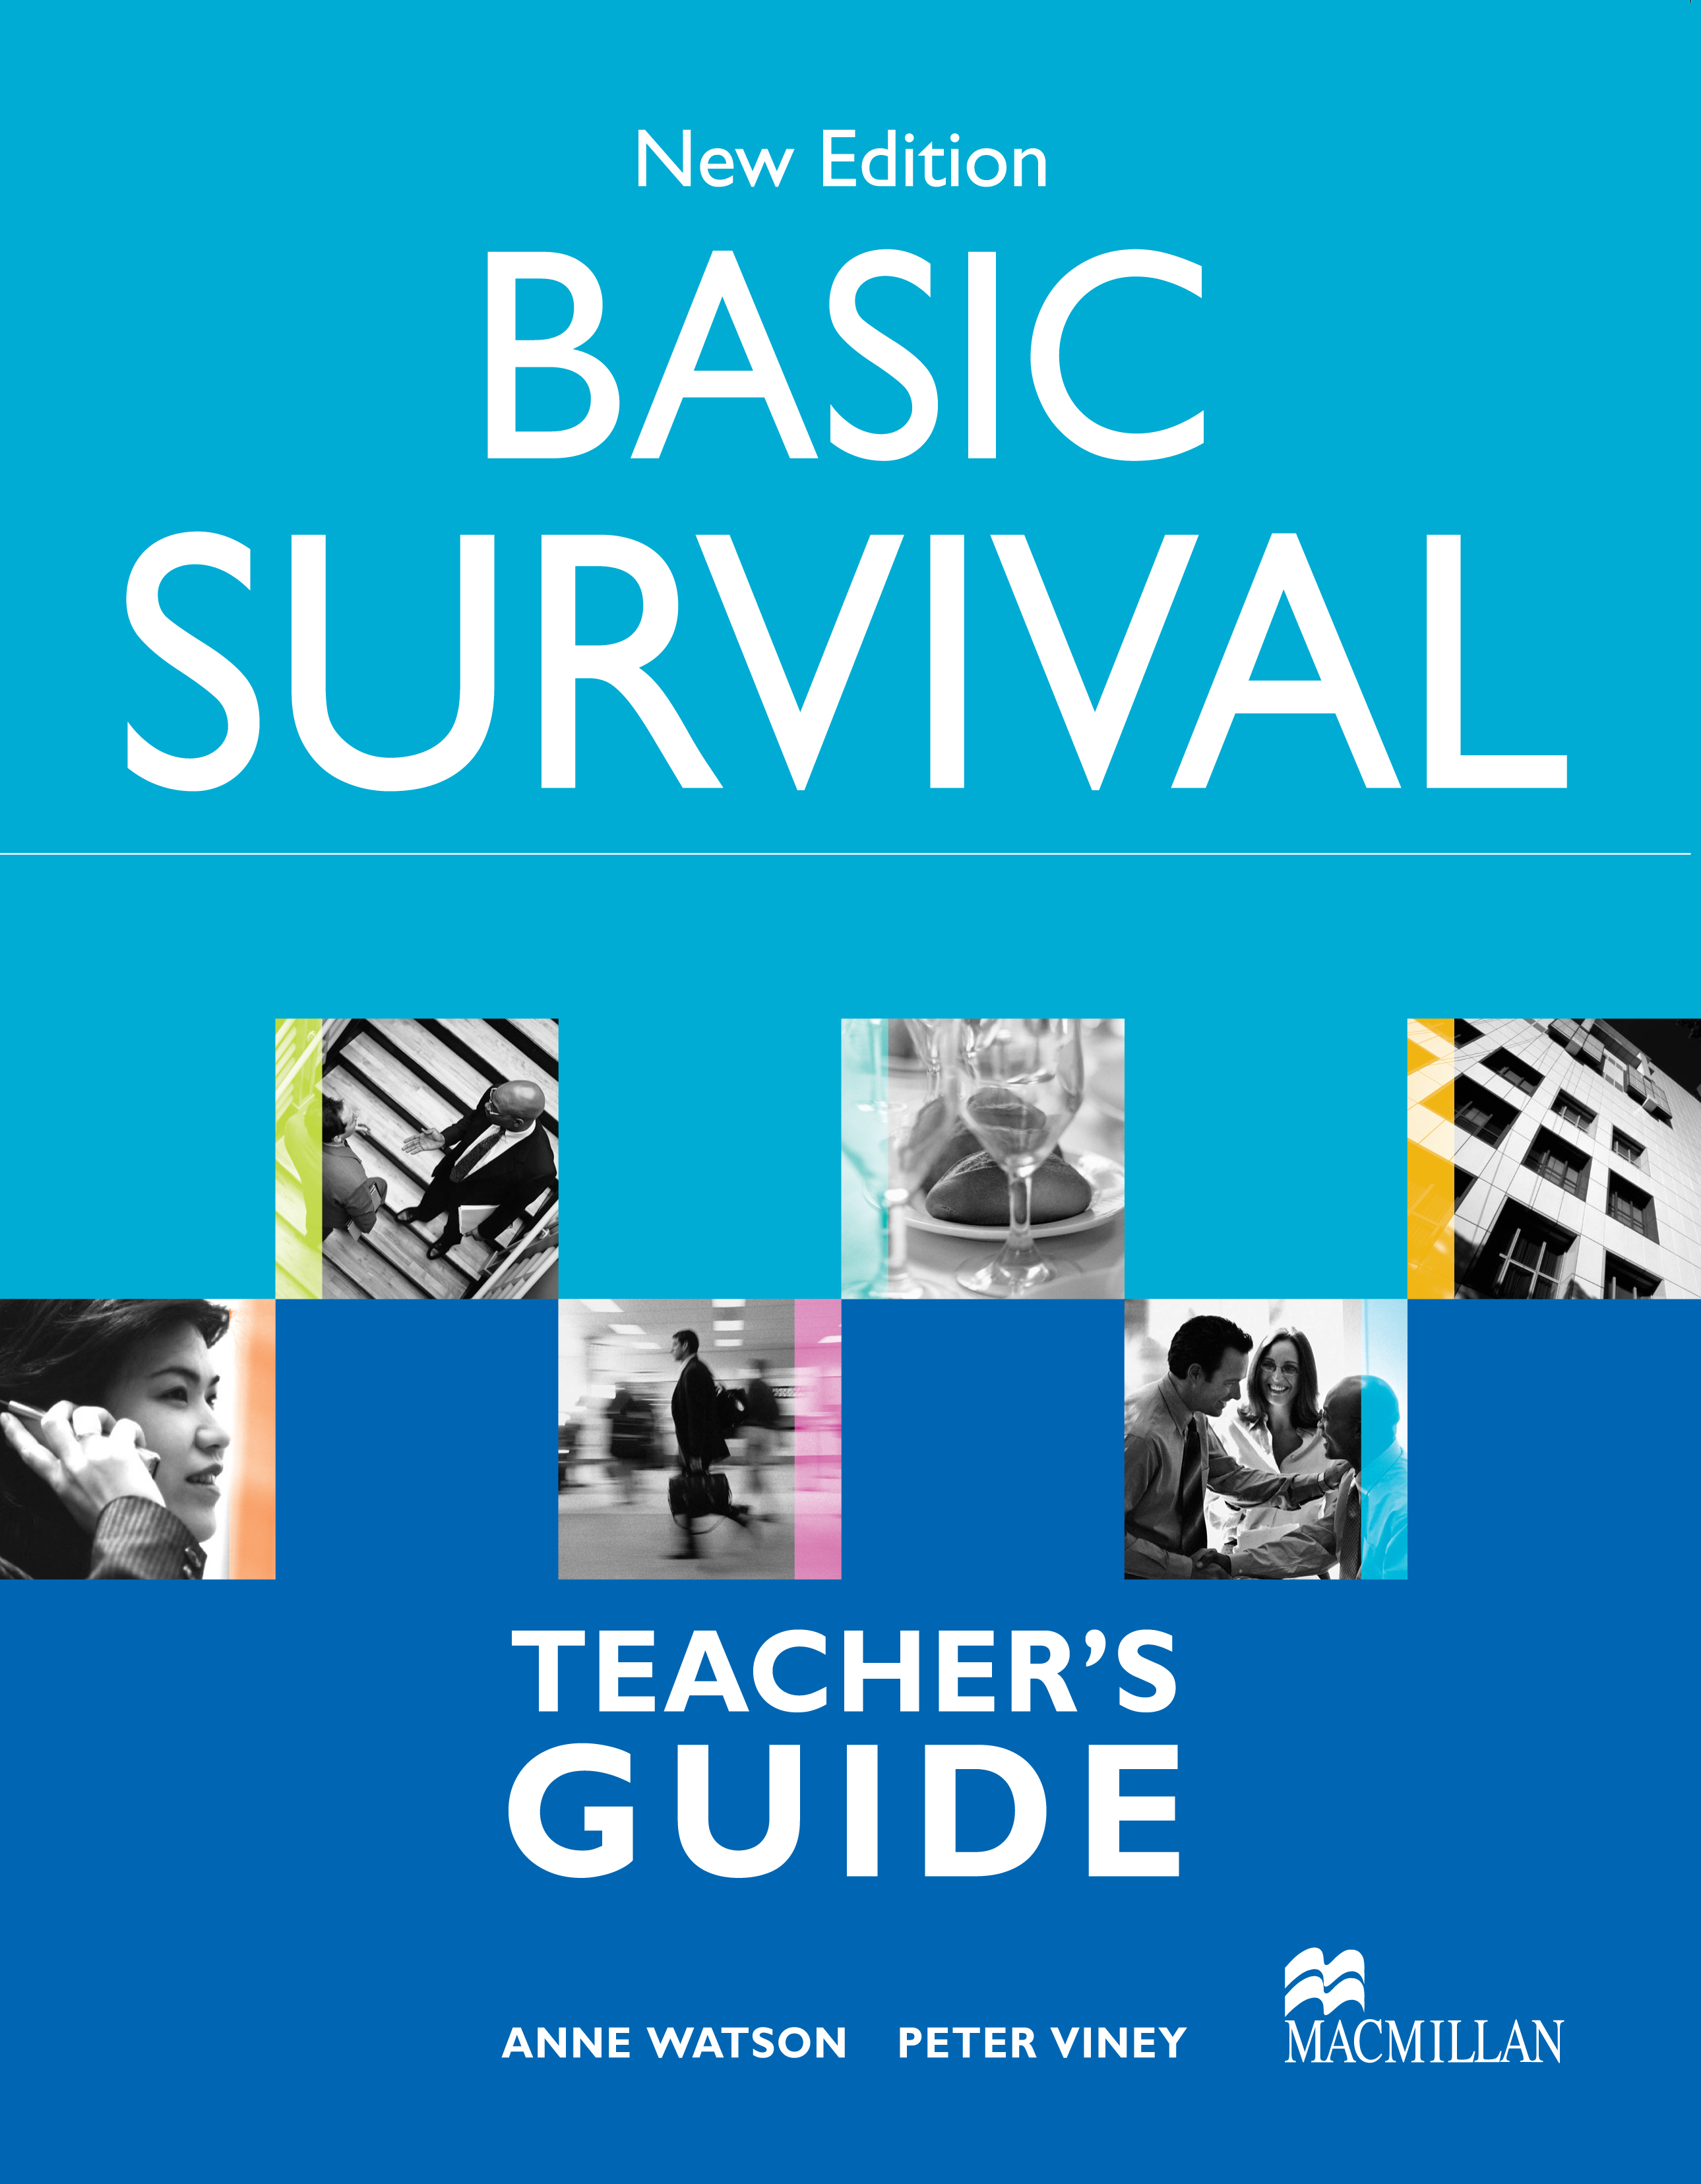 New Edition Basic Survival Teacher